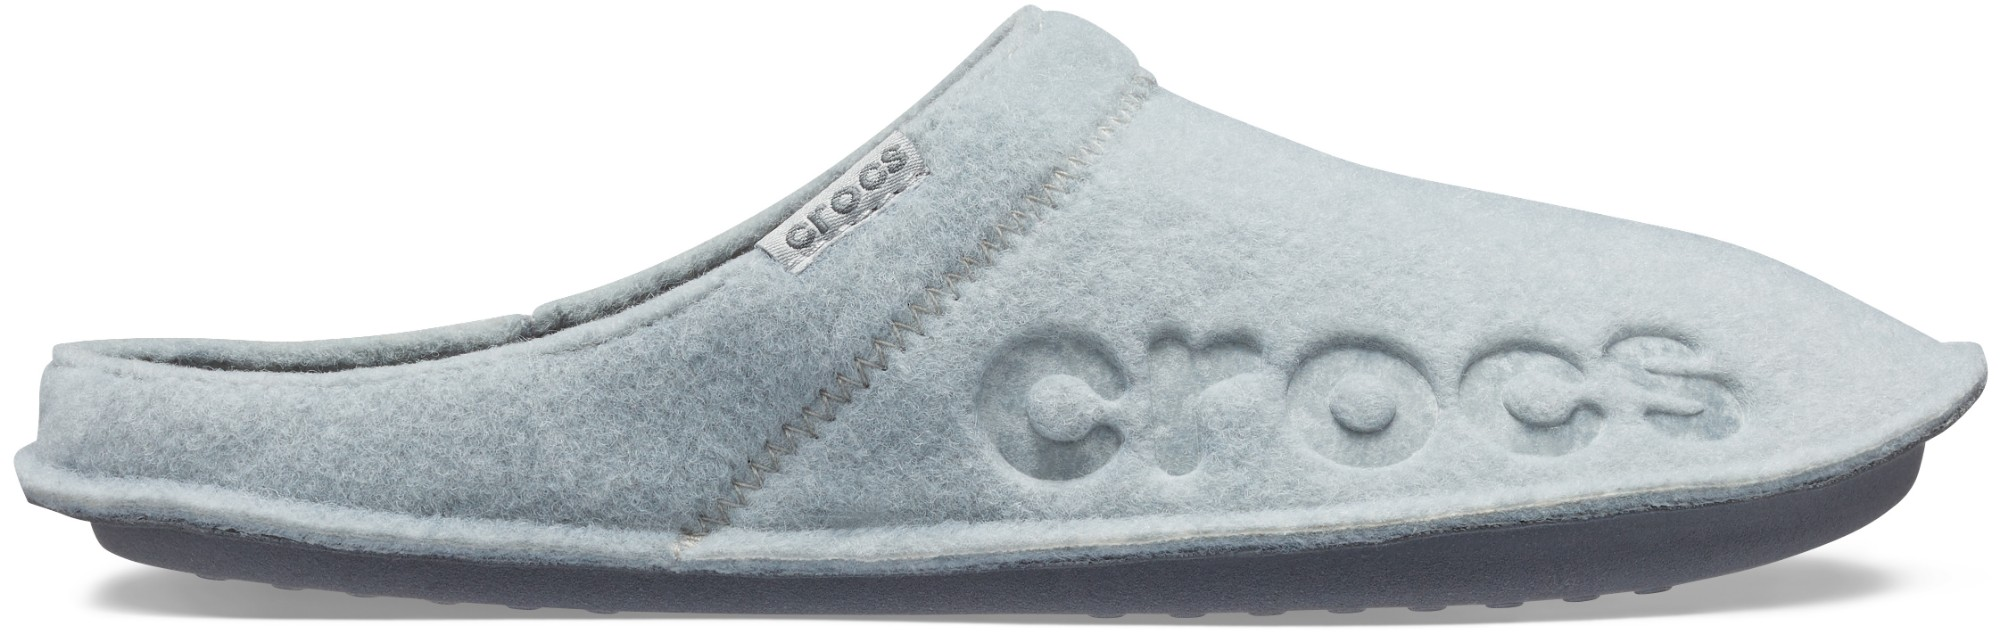 Crocs™ Baya Slipper Light Grey/Charcoal 41